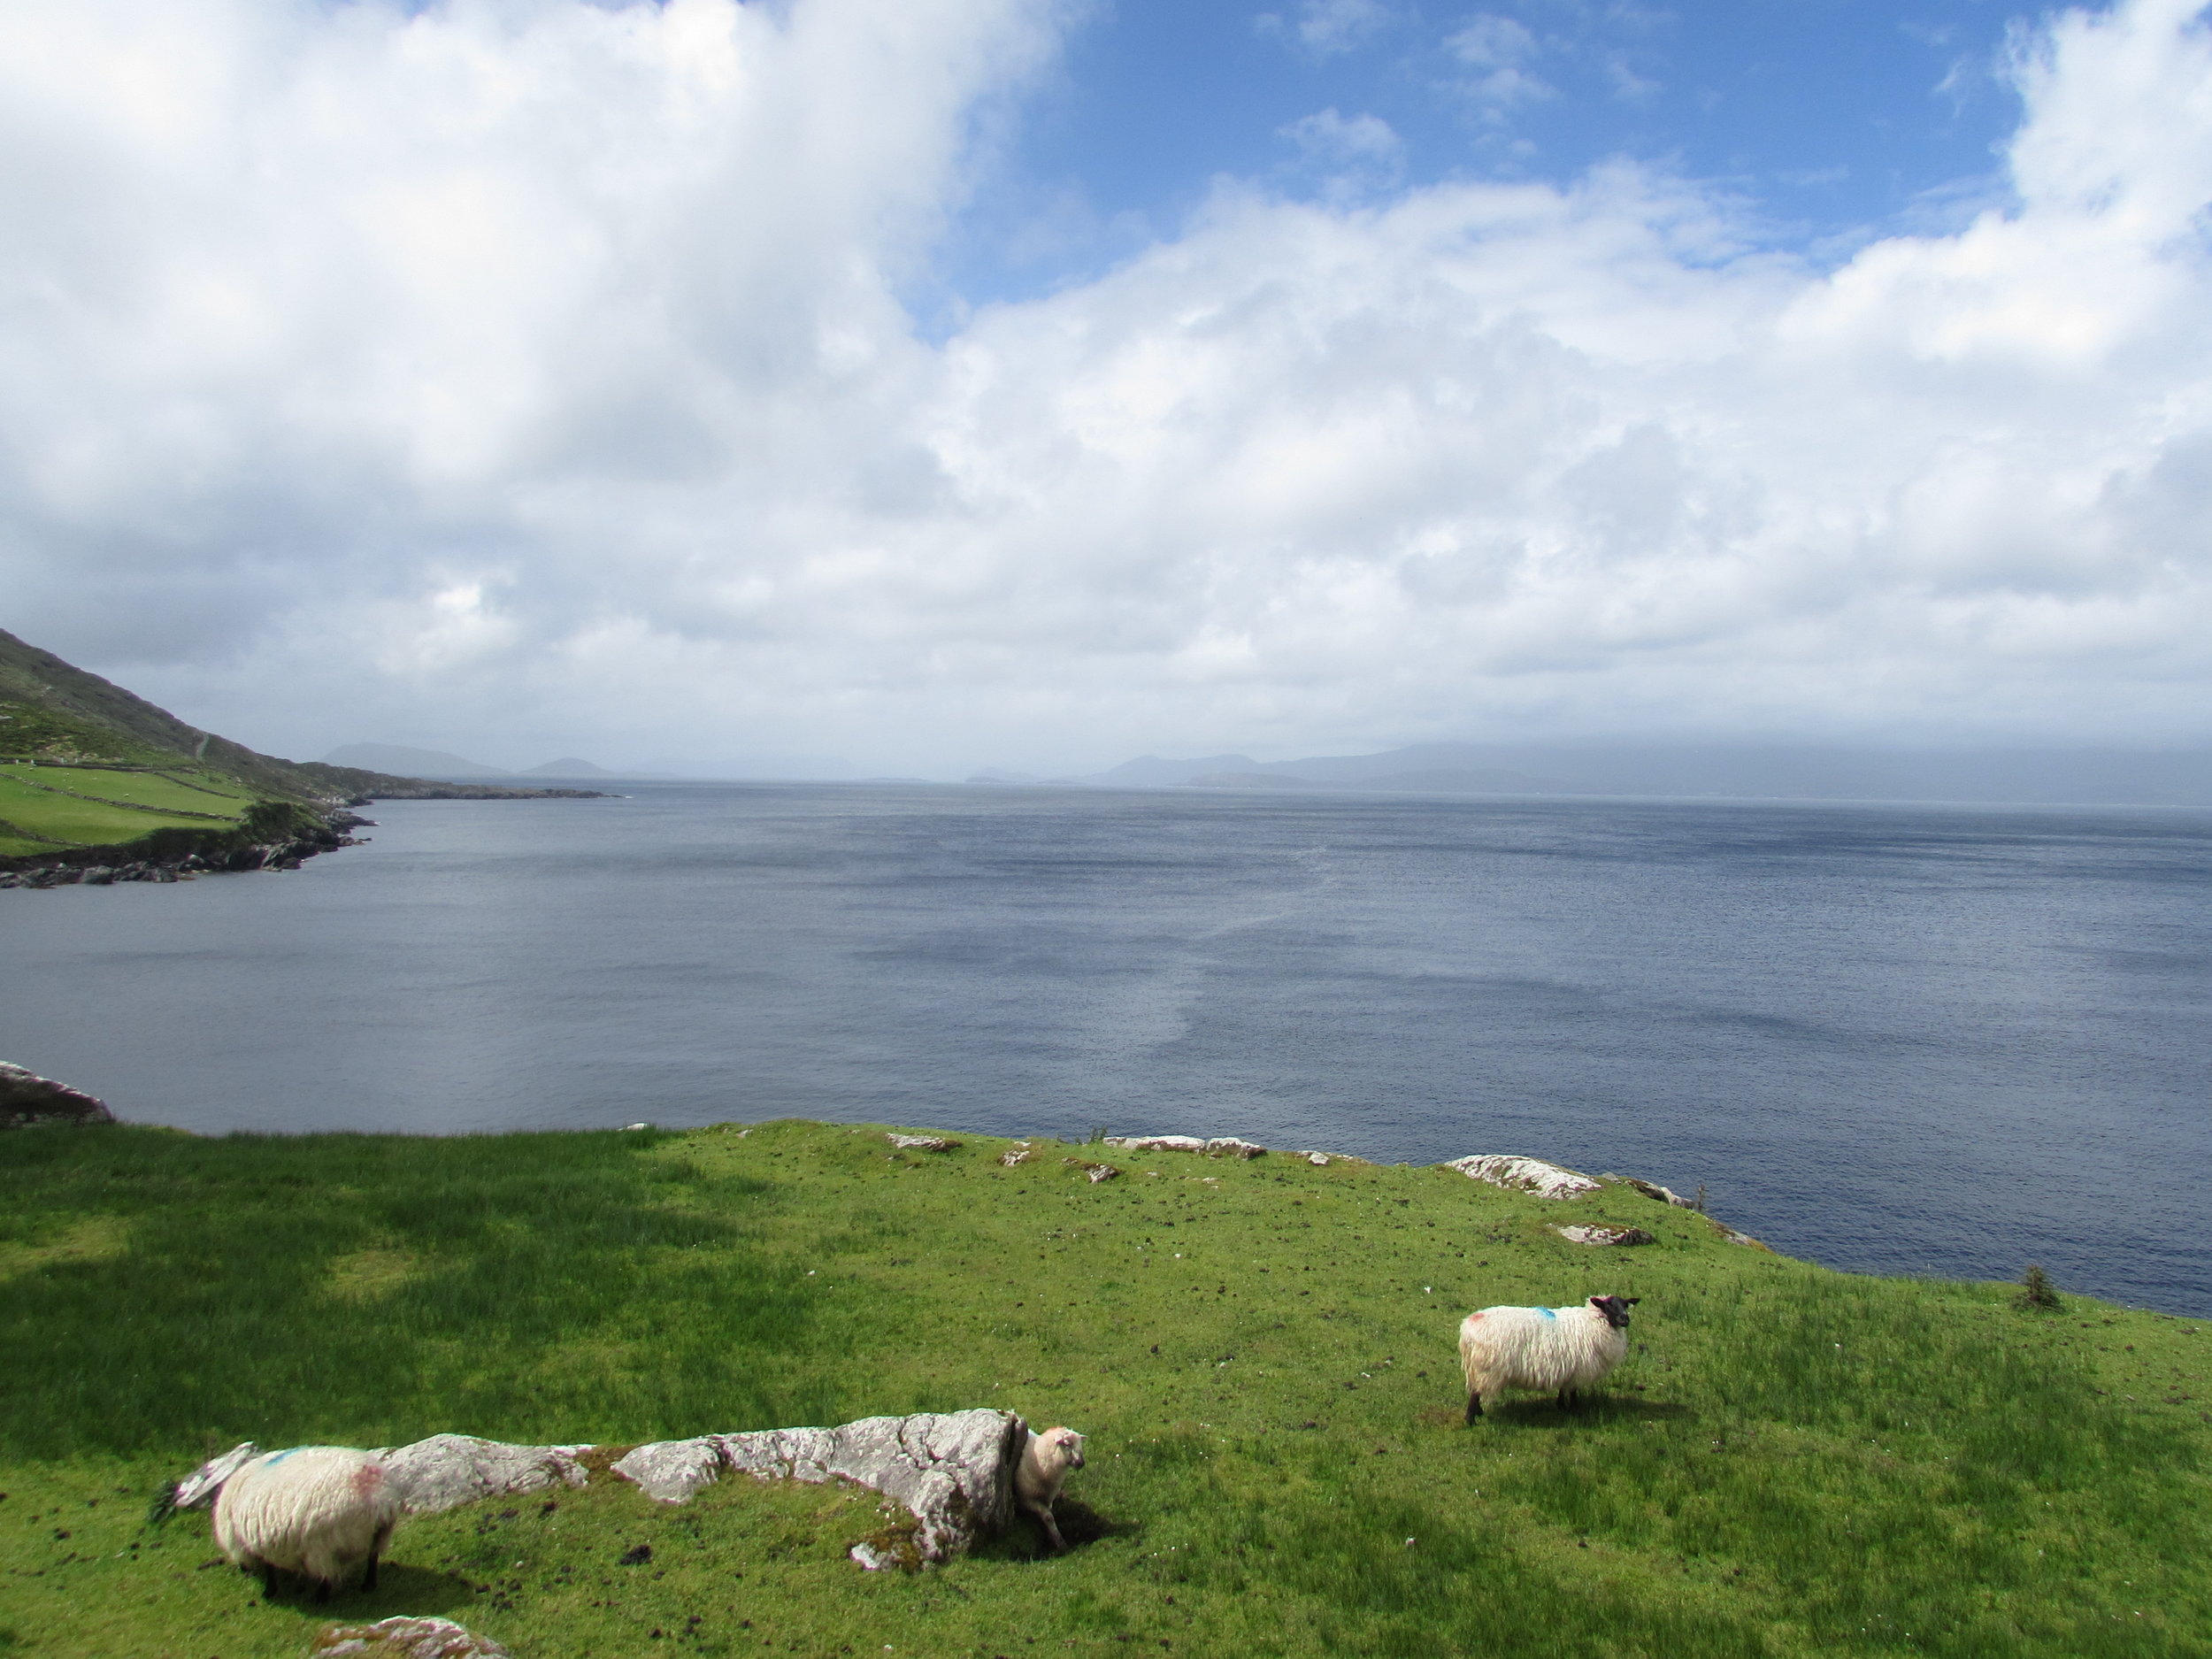 The traffic on Beara consists mainly of sheep.